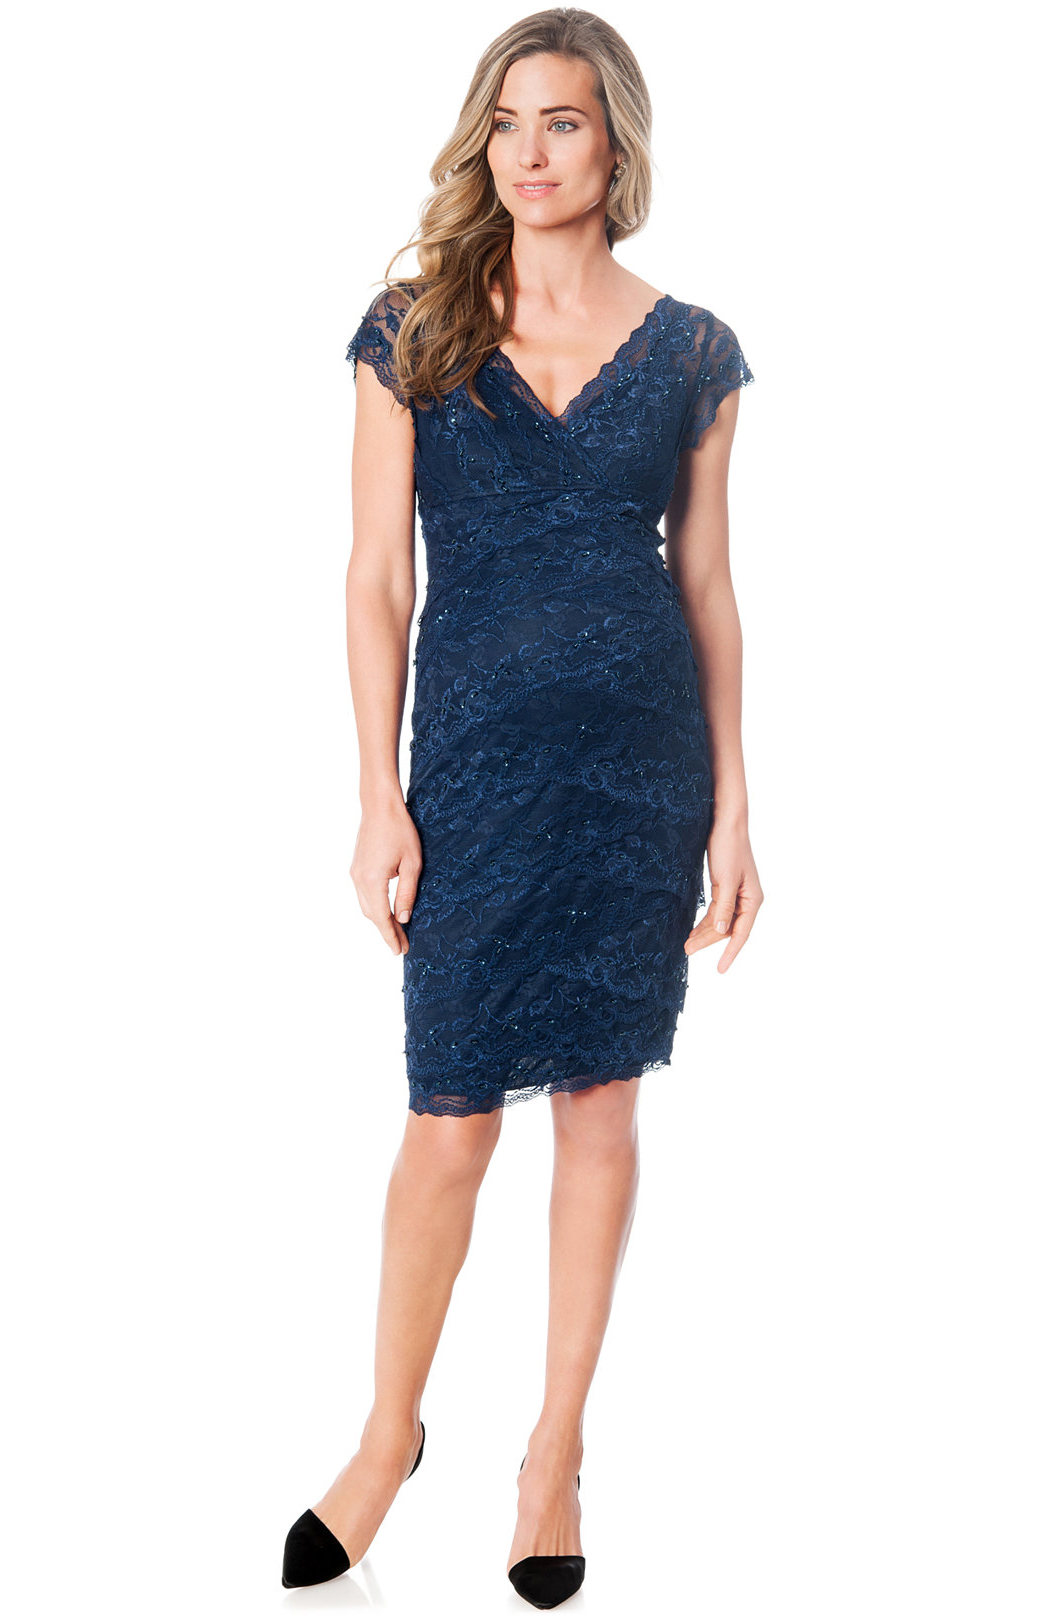 Maternity Cap-Sleeve Lace Dress from Macys